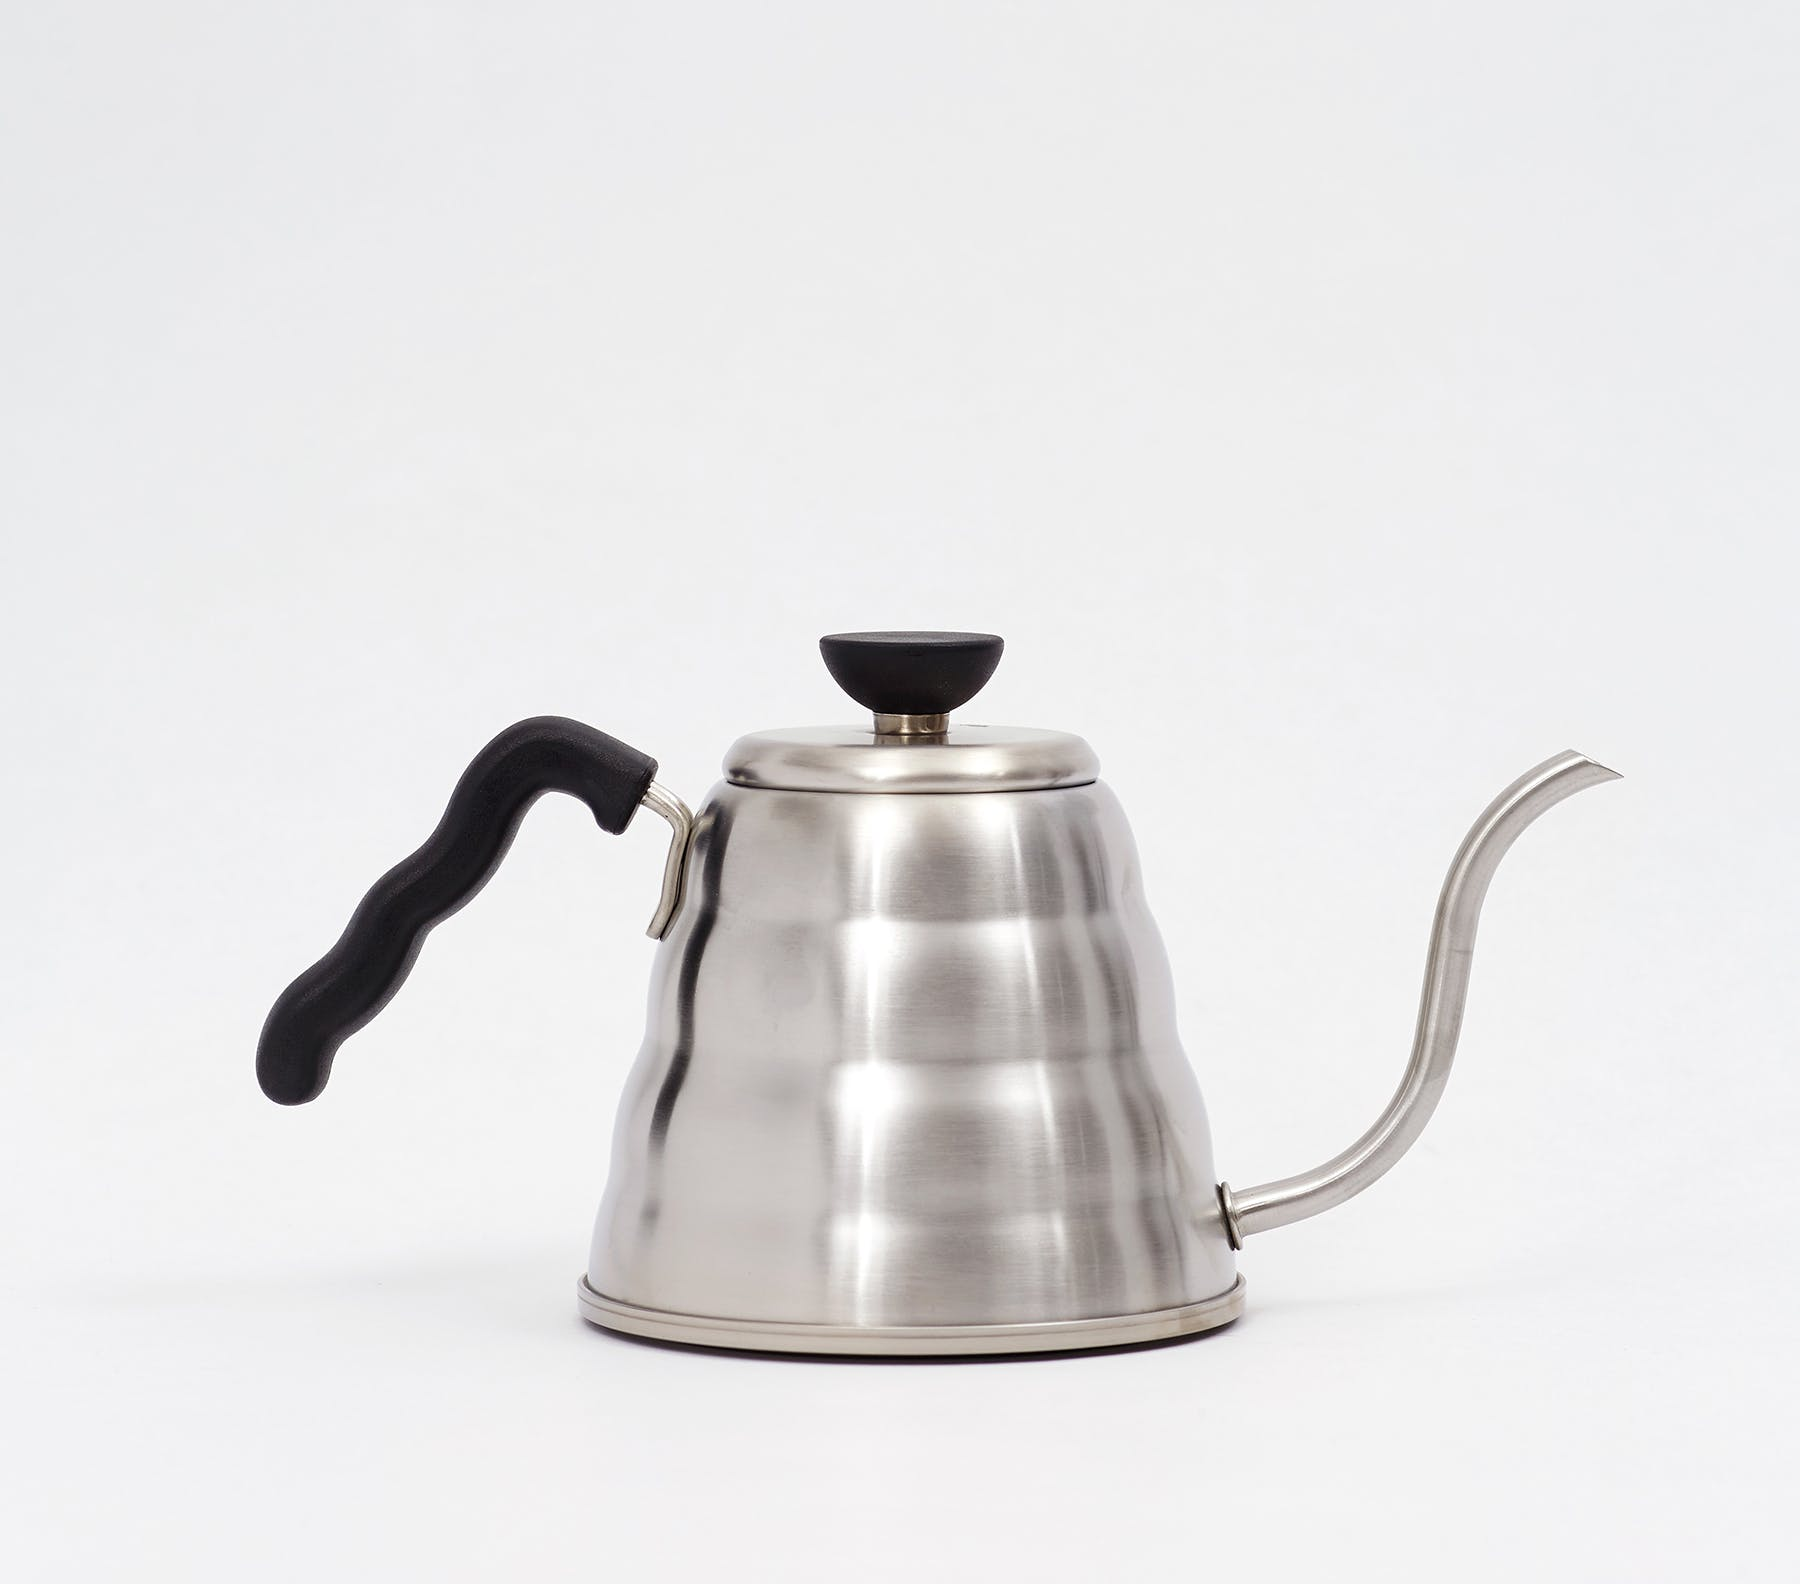 Hario kettle 2nd